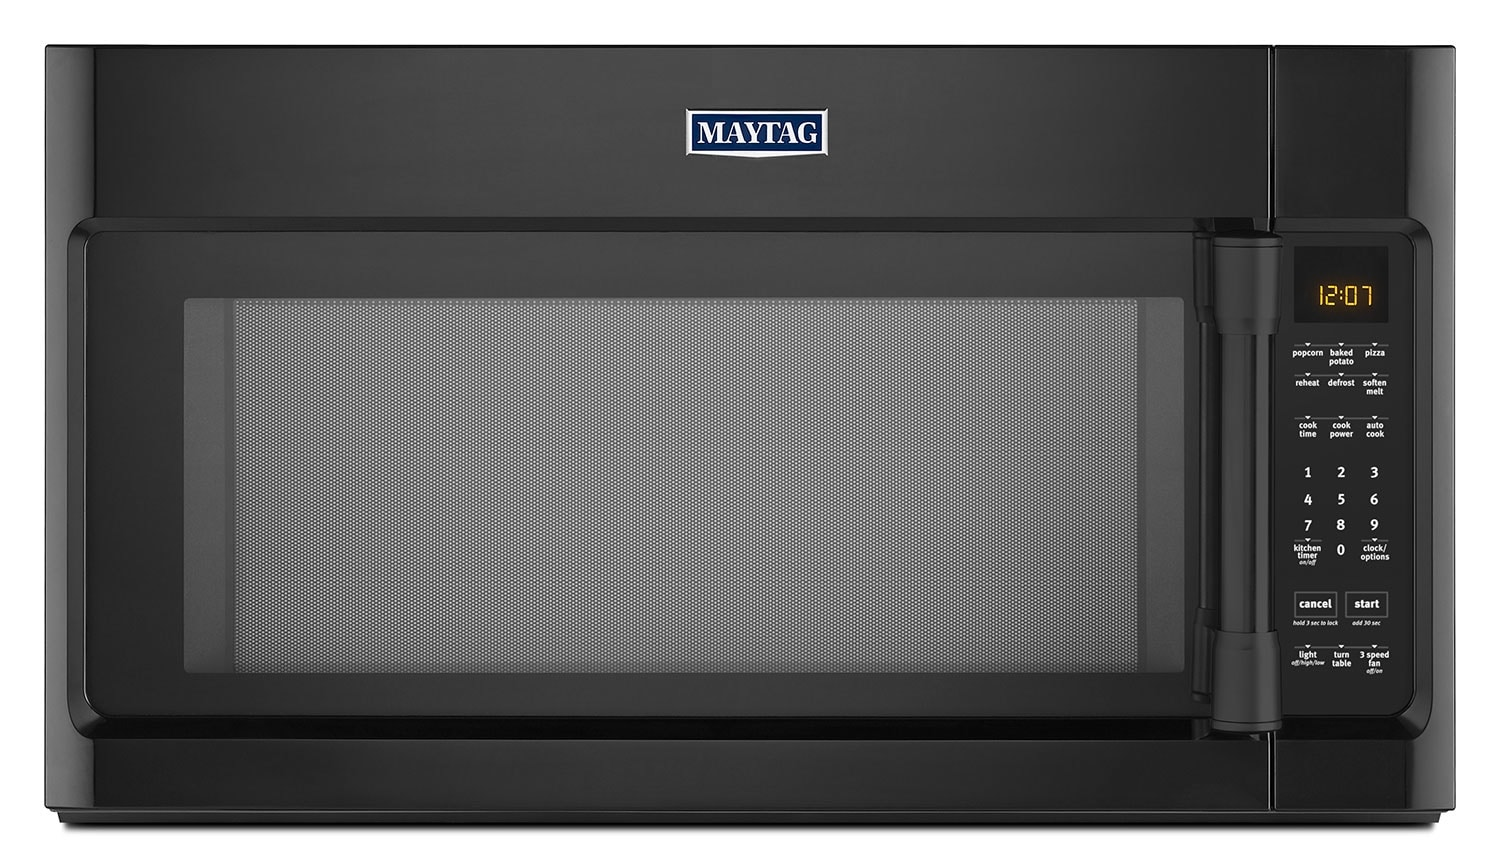 Cooking Products - Maytag Black Over-the-Range Microwave (2.0 Cu. Ft.) - YMMV4205DB